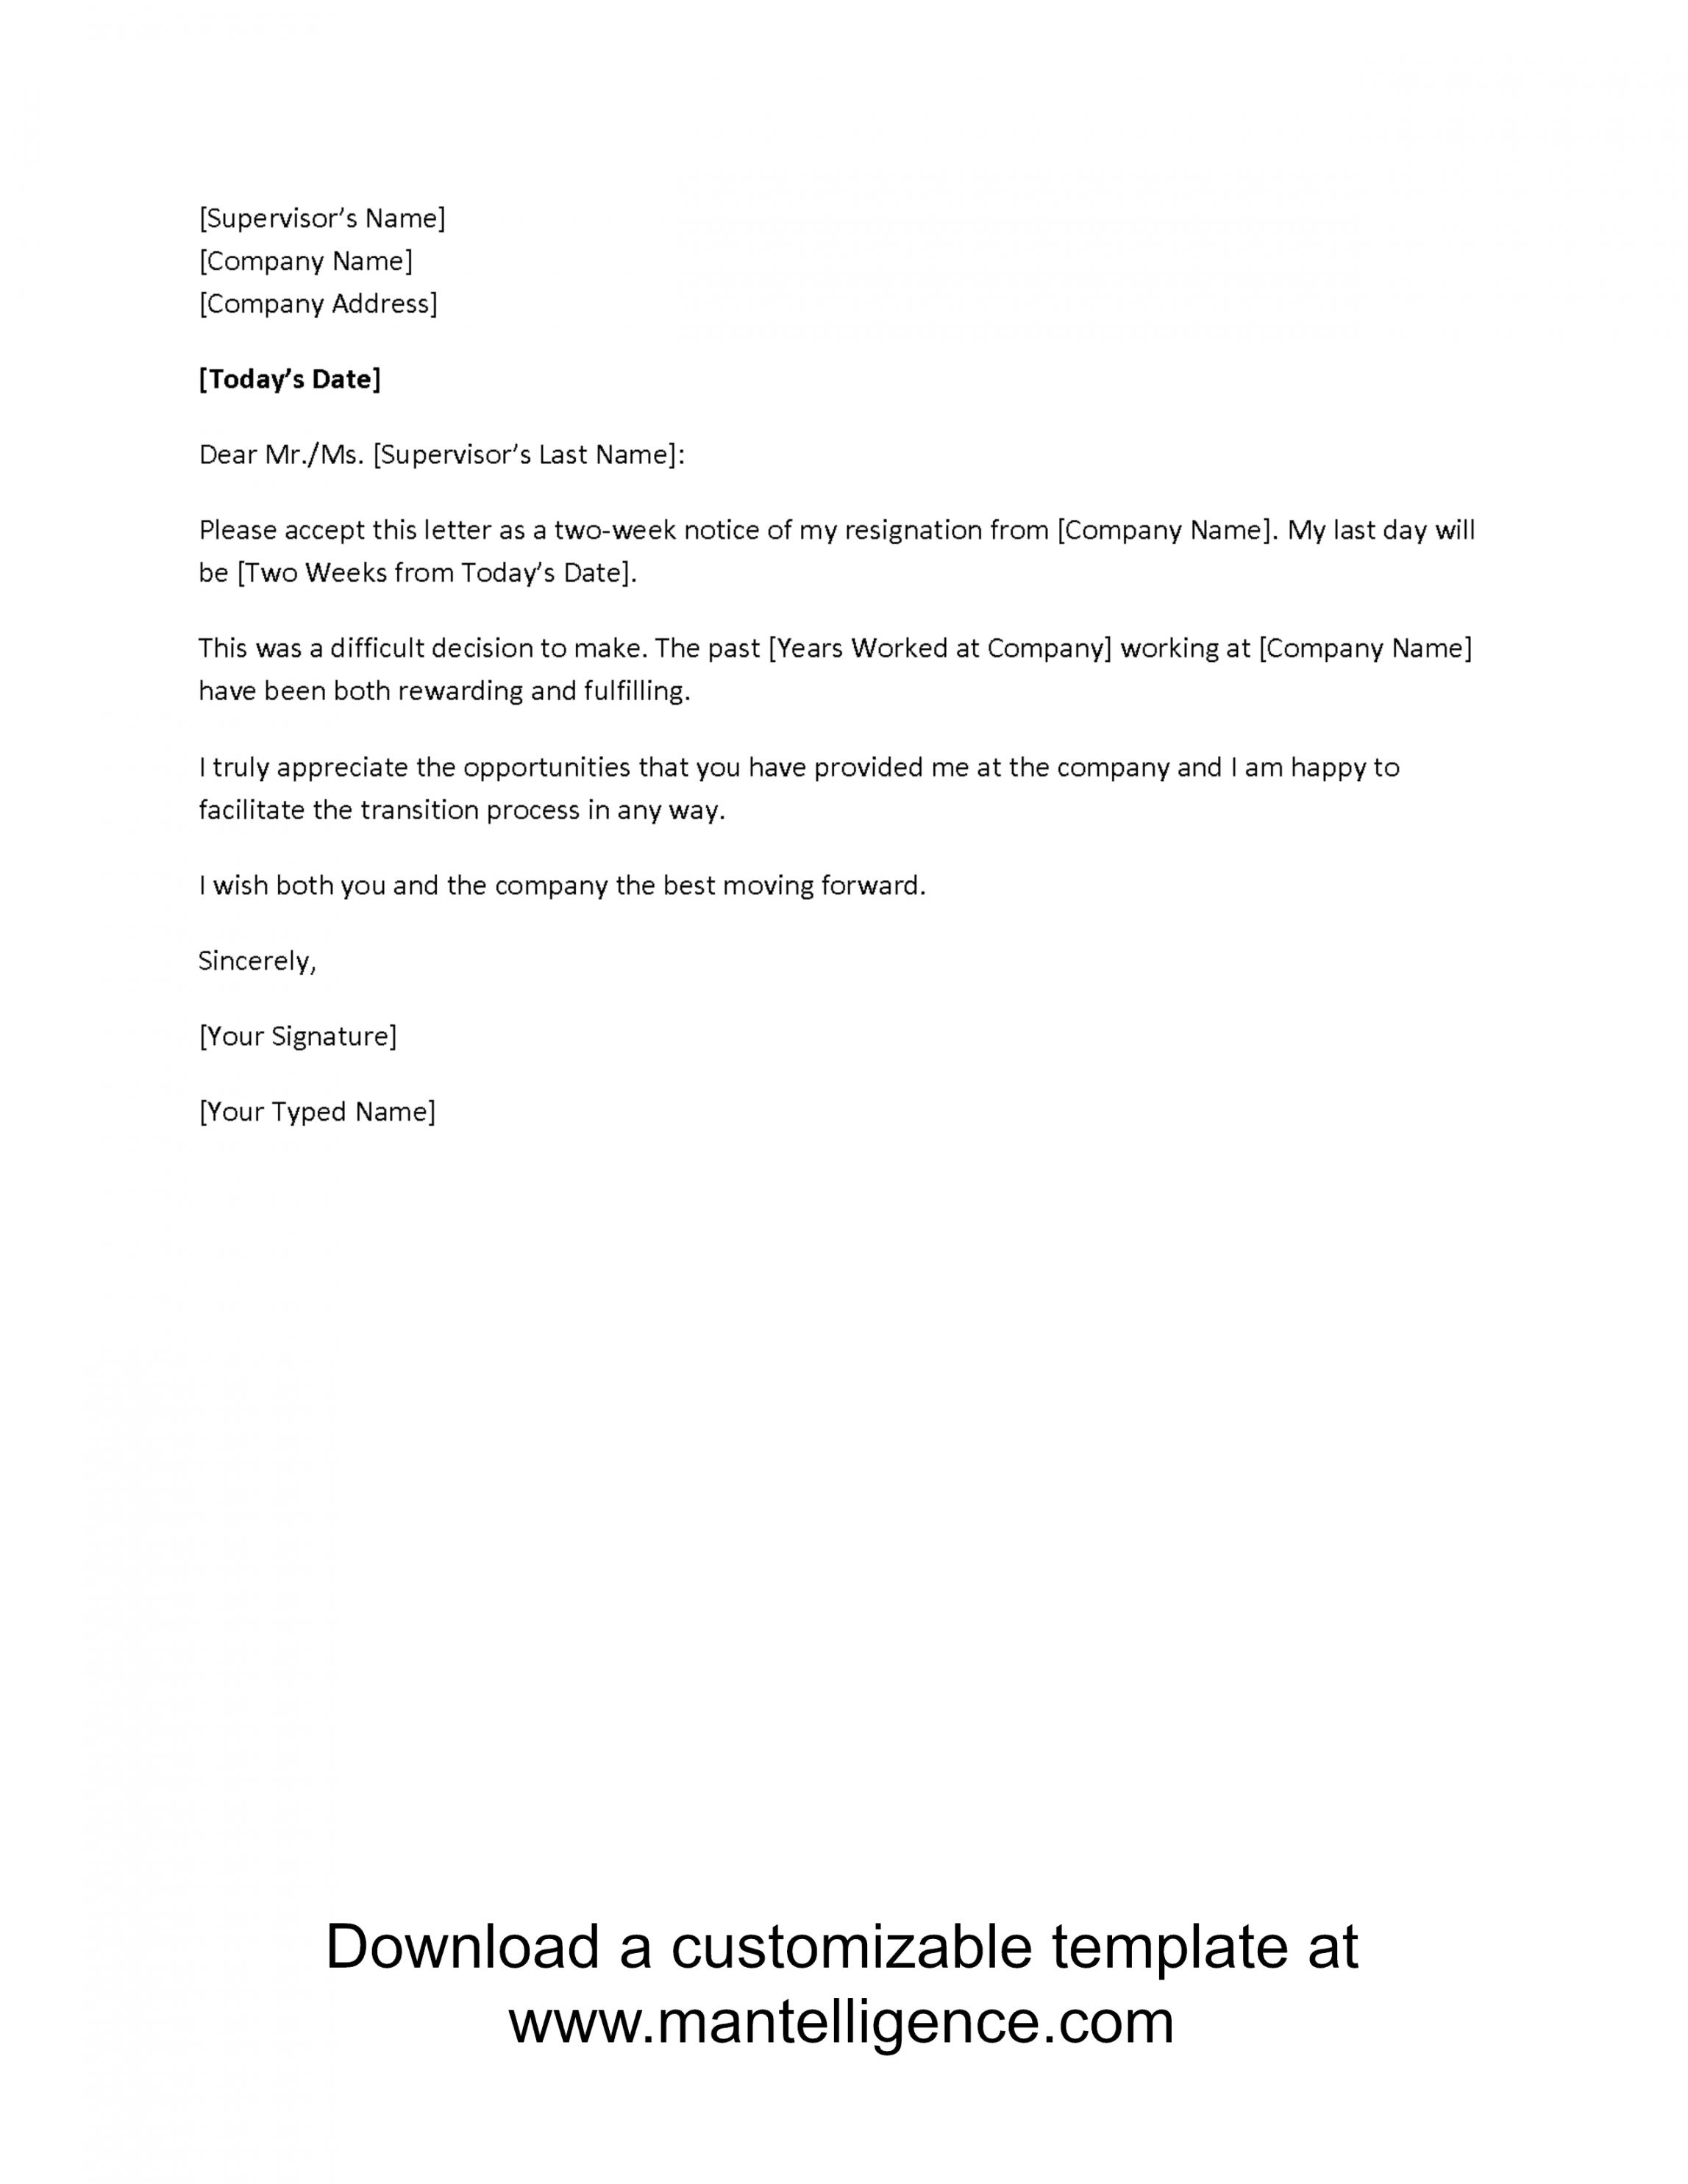 Get Our Printable Template Resignation Letter 2 Week